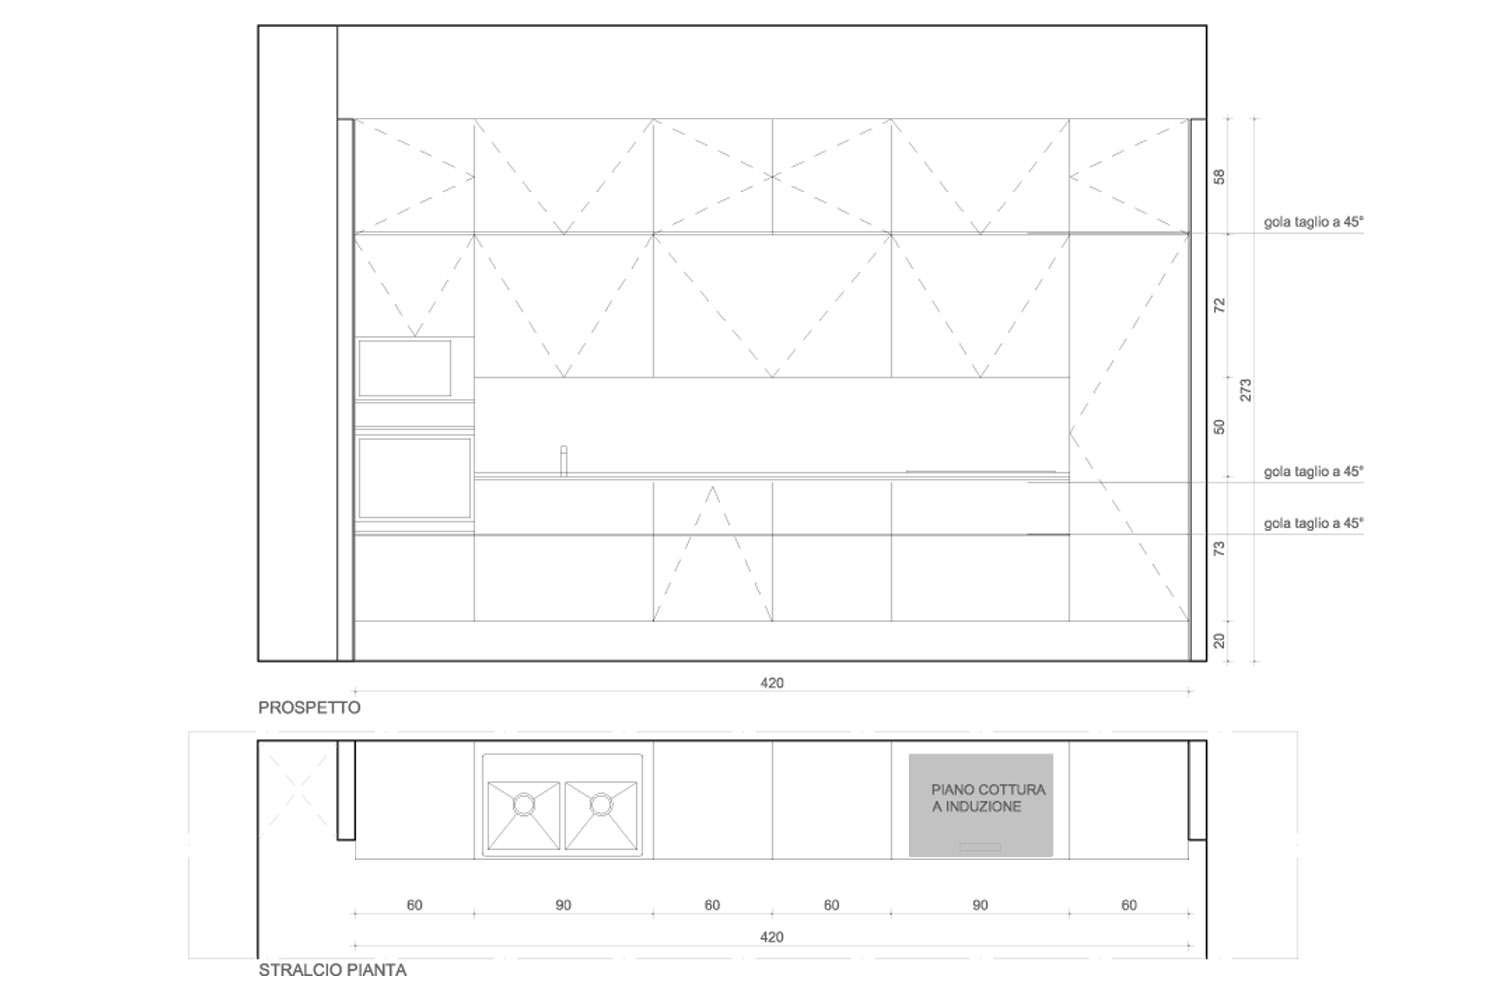 Technical drawing of the kitchen furniture - plan and elevation Luca Peralta